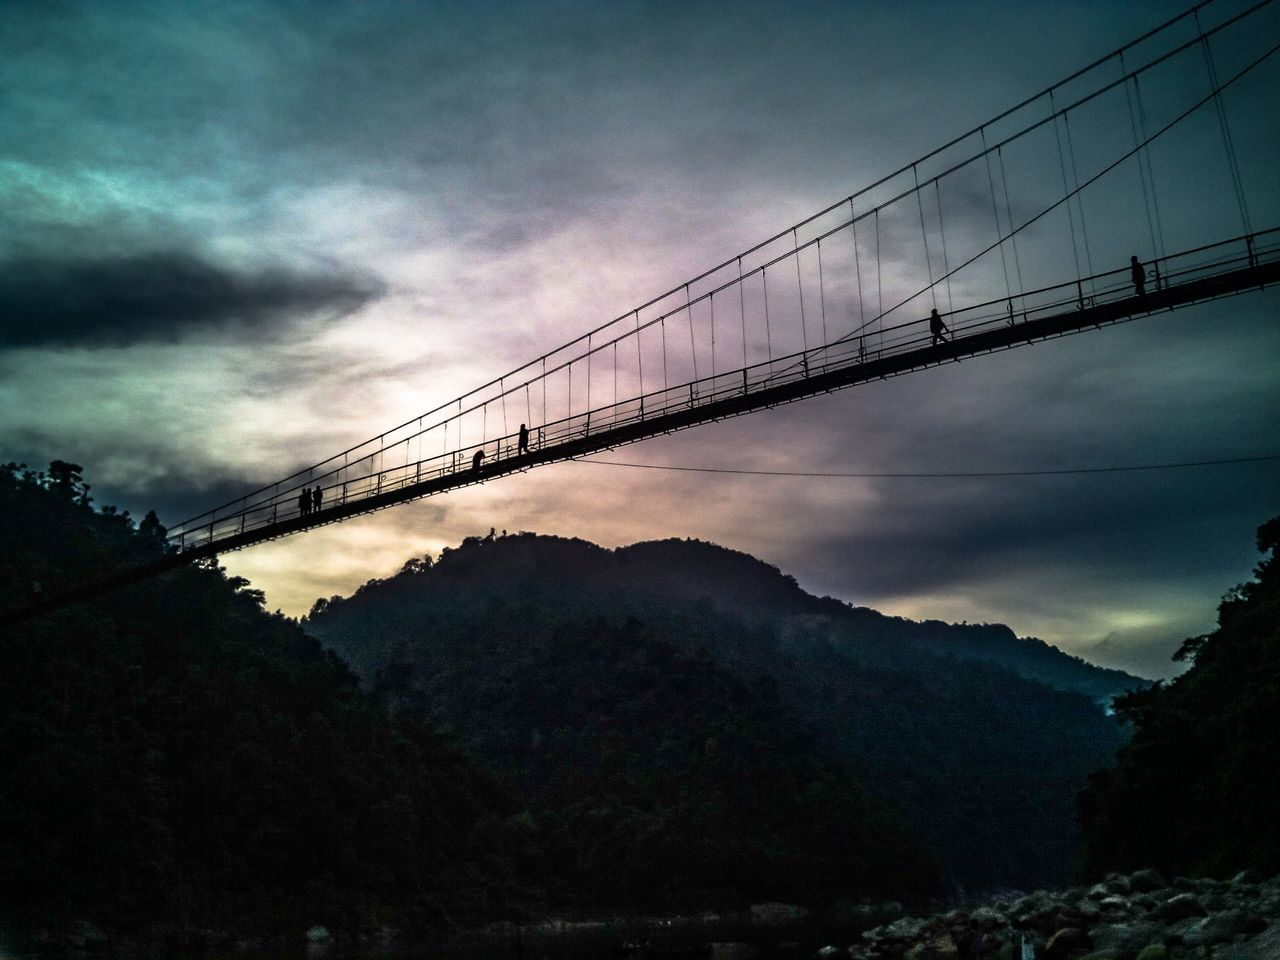 connection, cloud - sky, sky, mountain, bridge - man made structure, outdoors, suspension bridge, no people, nature, architecture, built structure, mountain range, cable, scenics, low angle view, beauty in nature, tranquility, day, bridge, travel destinations, tree, storm cloud